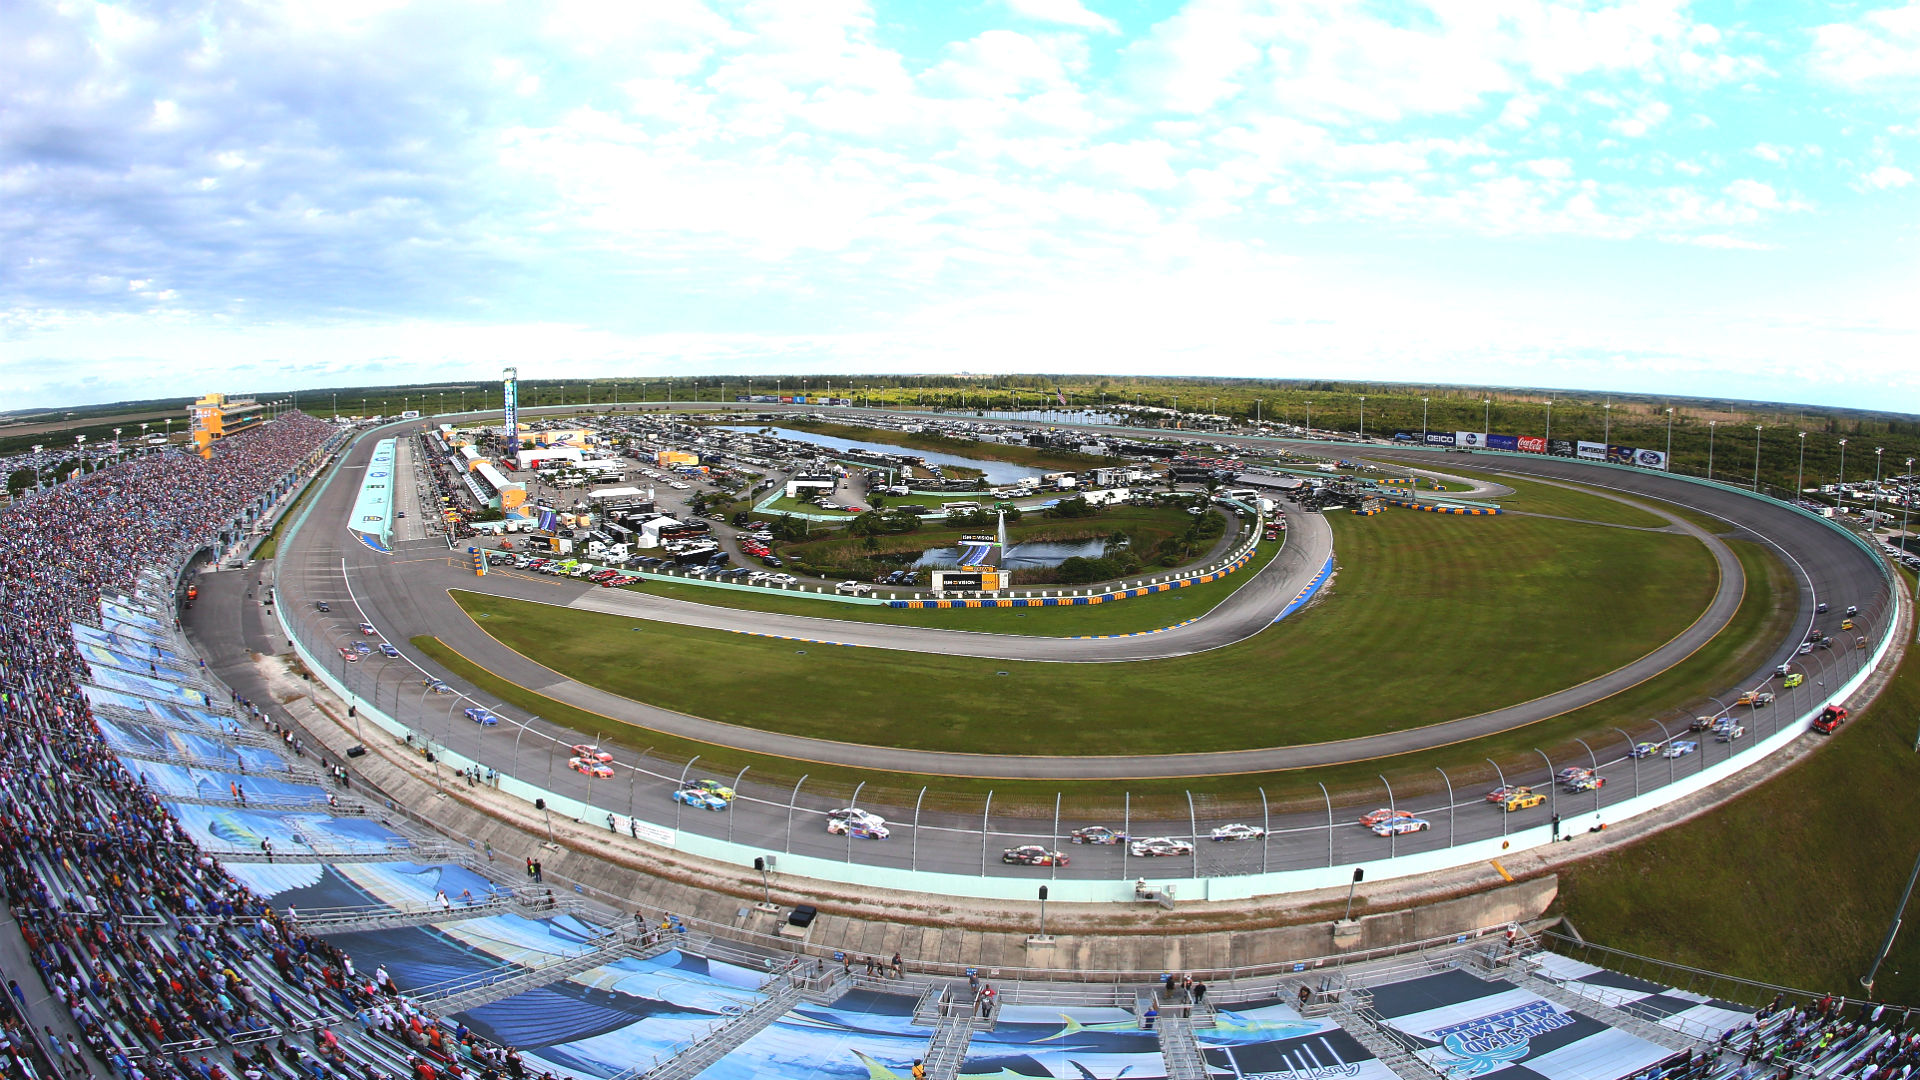 Odds for NASCAR race at Homestead: Expert picks & favorites to win Sunday's Cup Series race